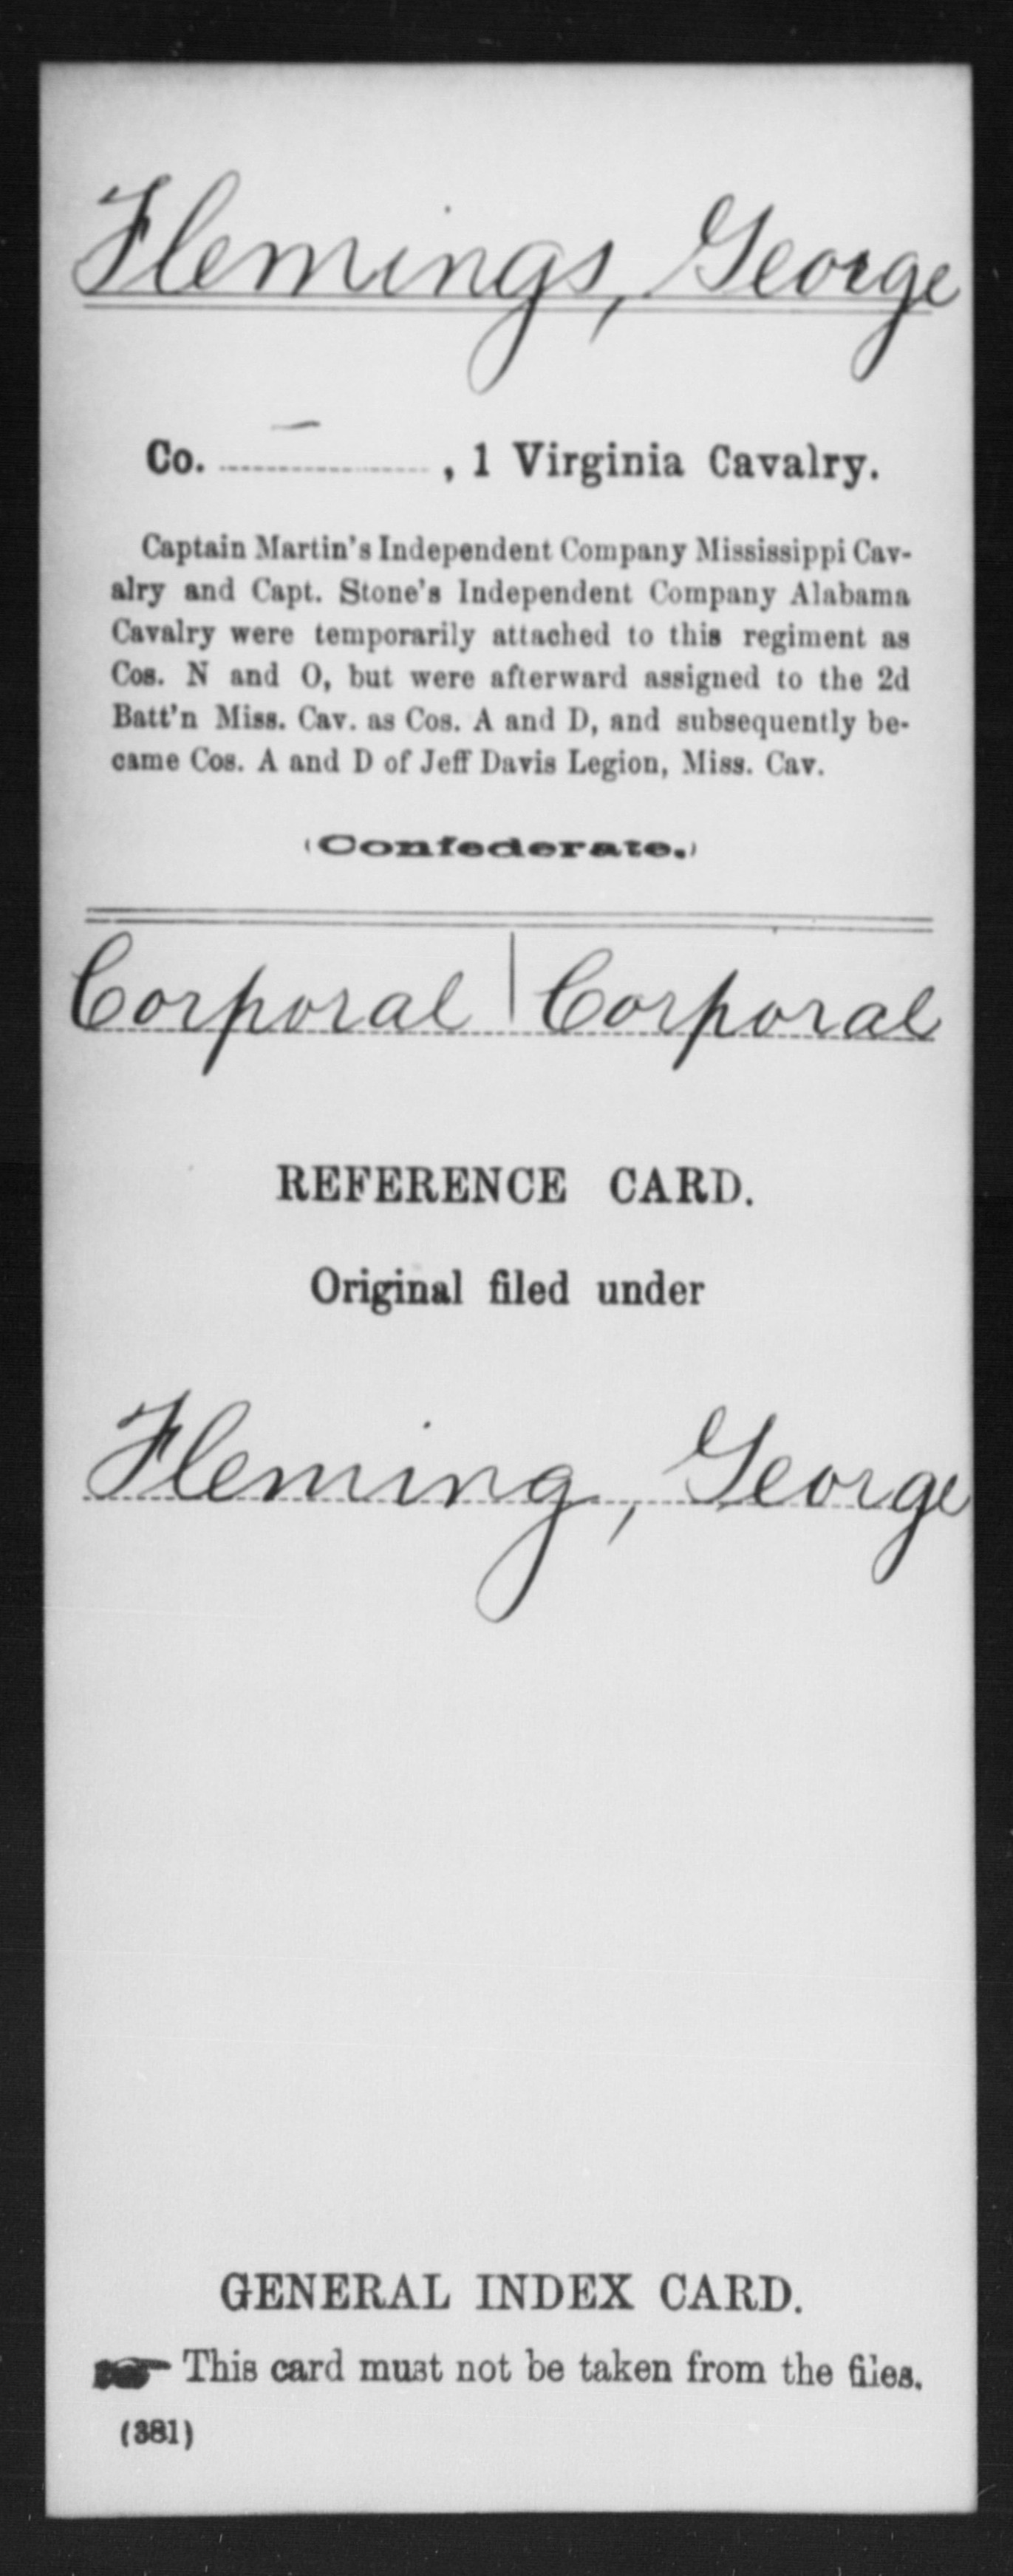 Flemings, George - 1st Cavalry, Company [Blank] - Enlistment Rank: Corporal - Discharge Rank: Corporal